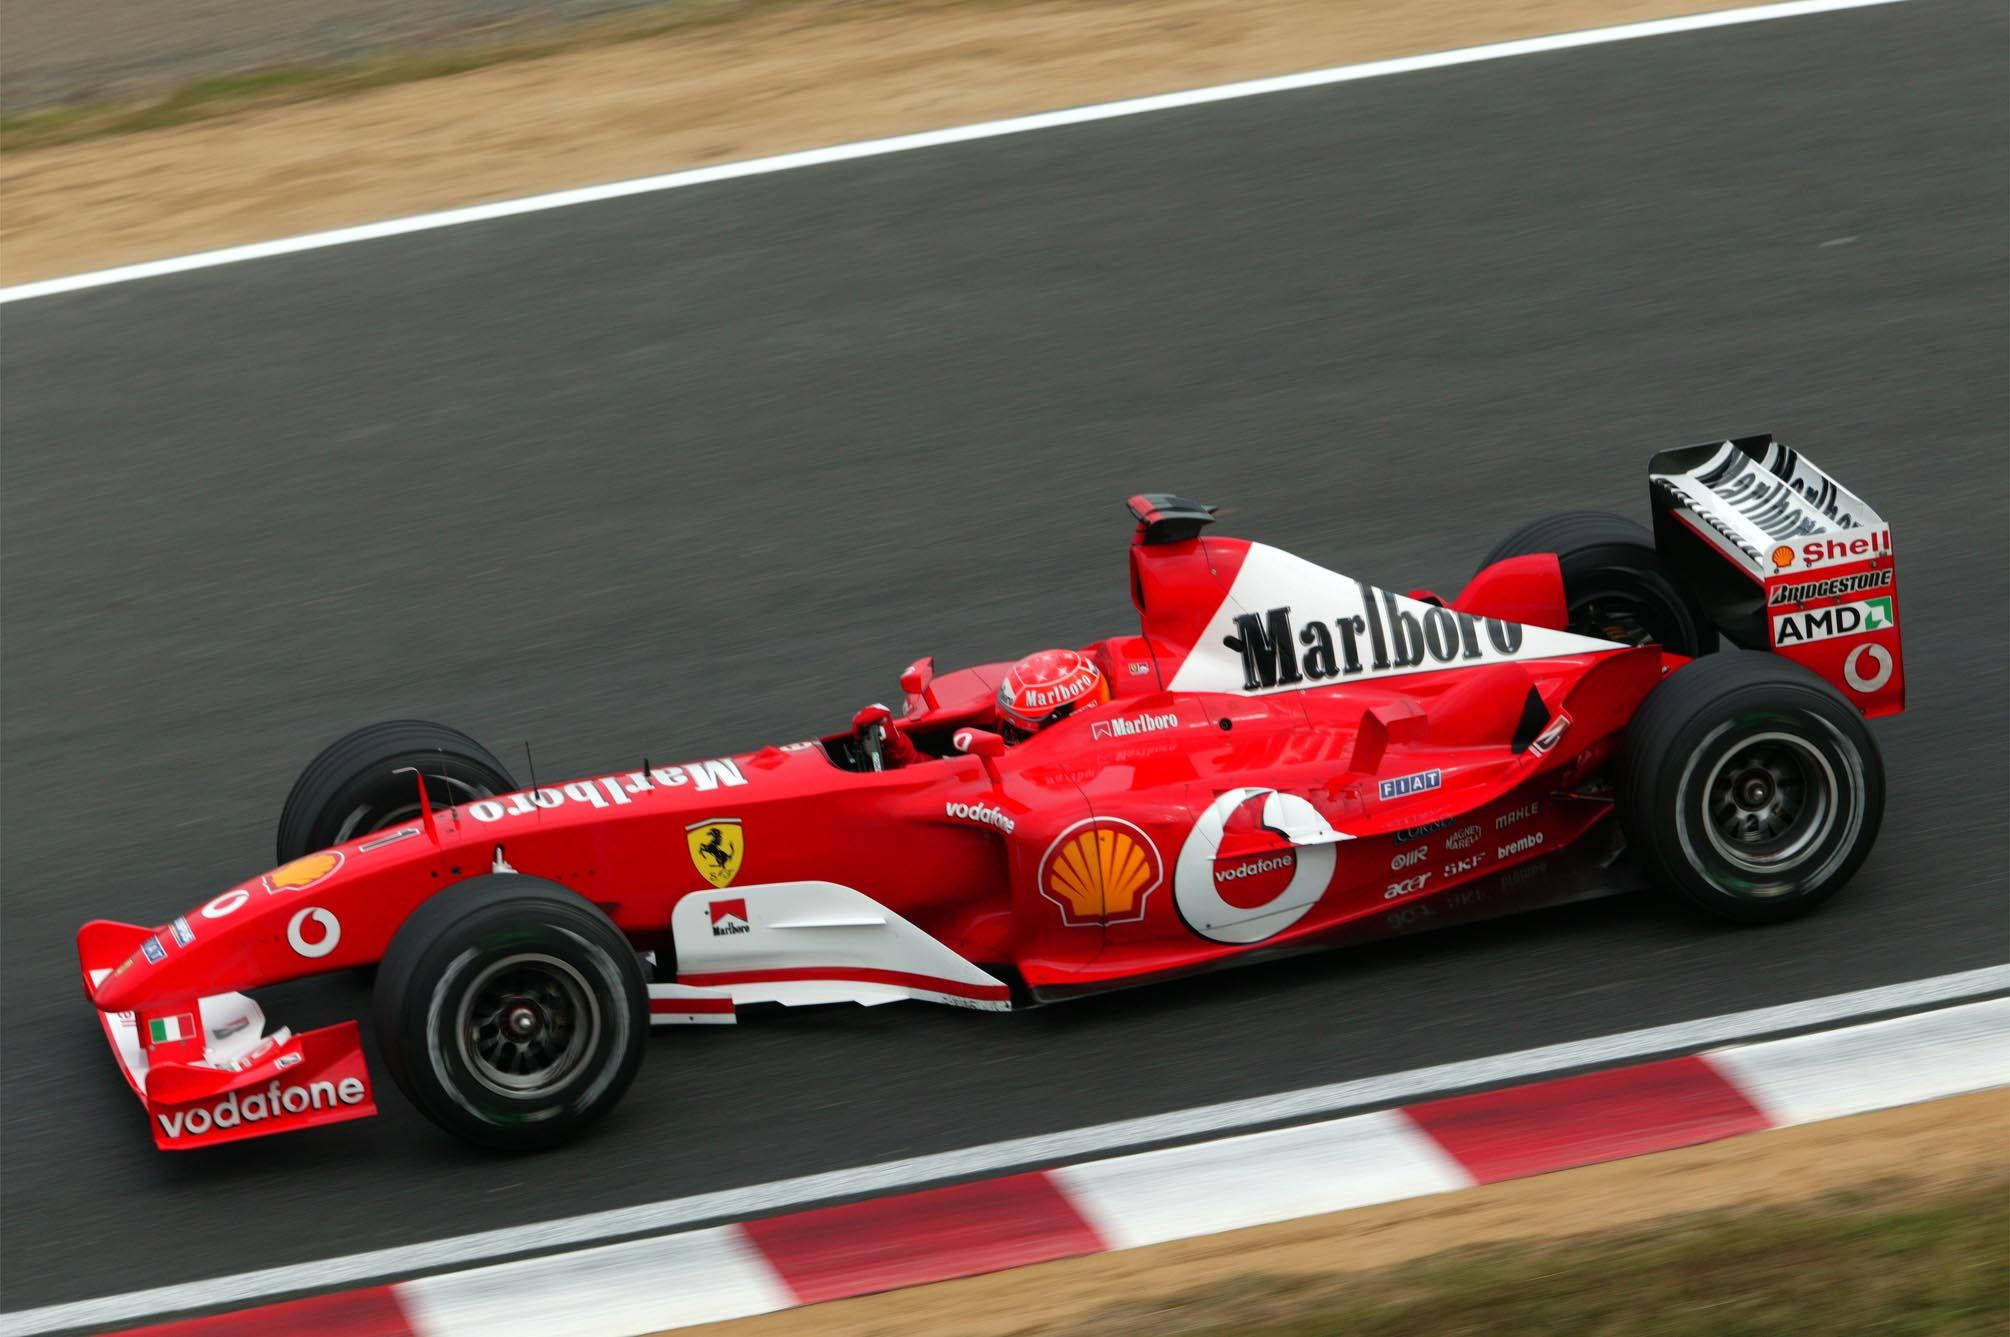 2003 gp japonii suzuka ferrari f2003 ga michael. Black Bedroom Furniture Sets. Home Design Ideas